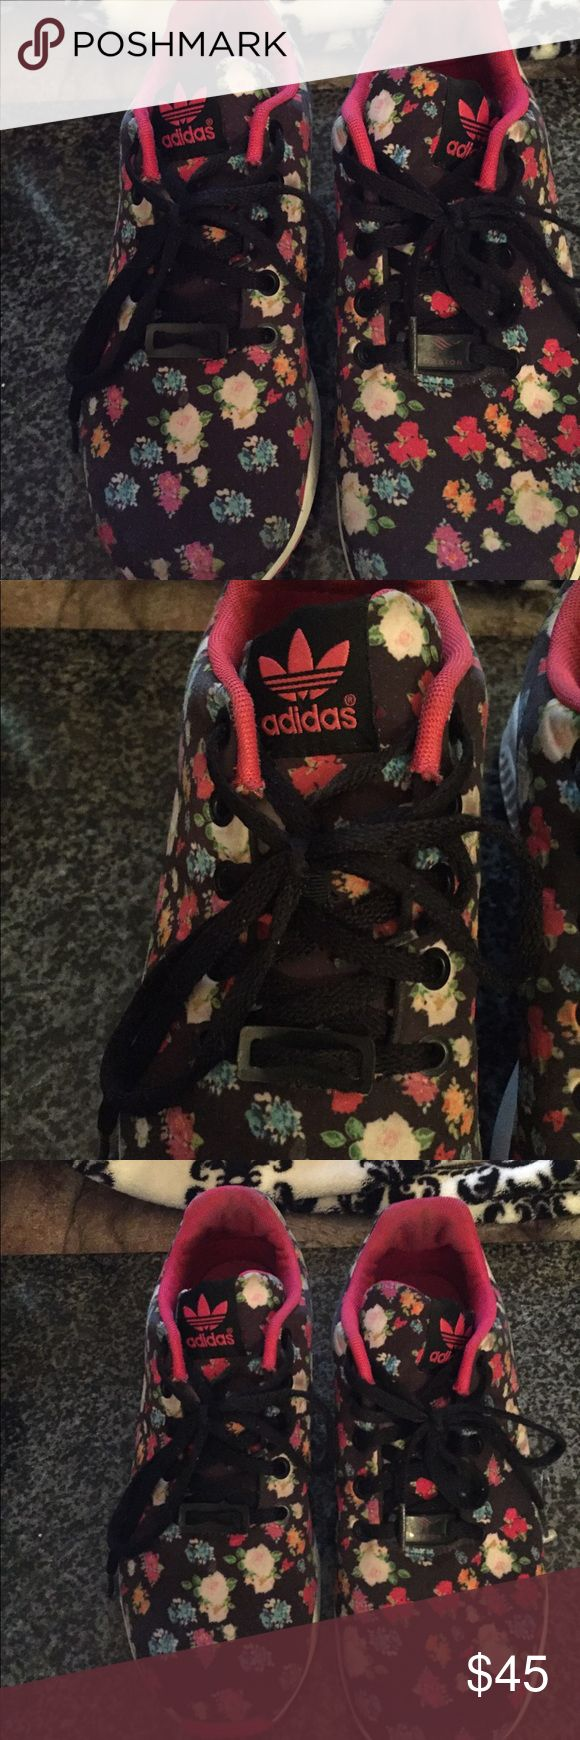 Adidas ZX FLUX floral Sneakers. Gorgeous Sz 5 Gorgeous pair of rare Adidas ZX FLIX floral sneakers. Hard to find. Size 5. Gently used about 2/3 times only. Pair with shorts, jeans or leggings. Cute sneaks for sure Adidas Shoes Sneakers